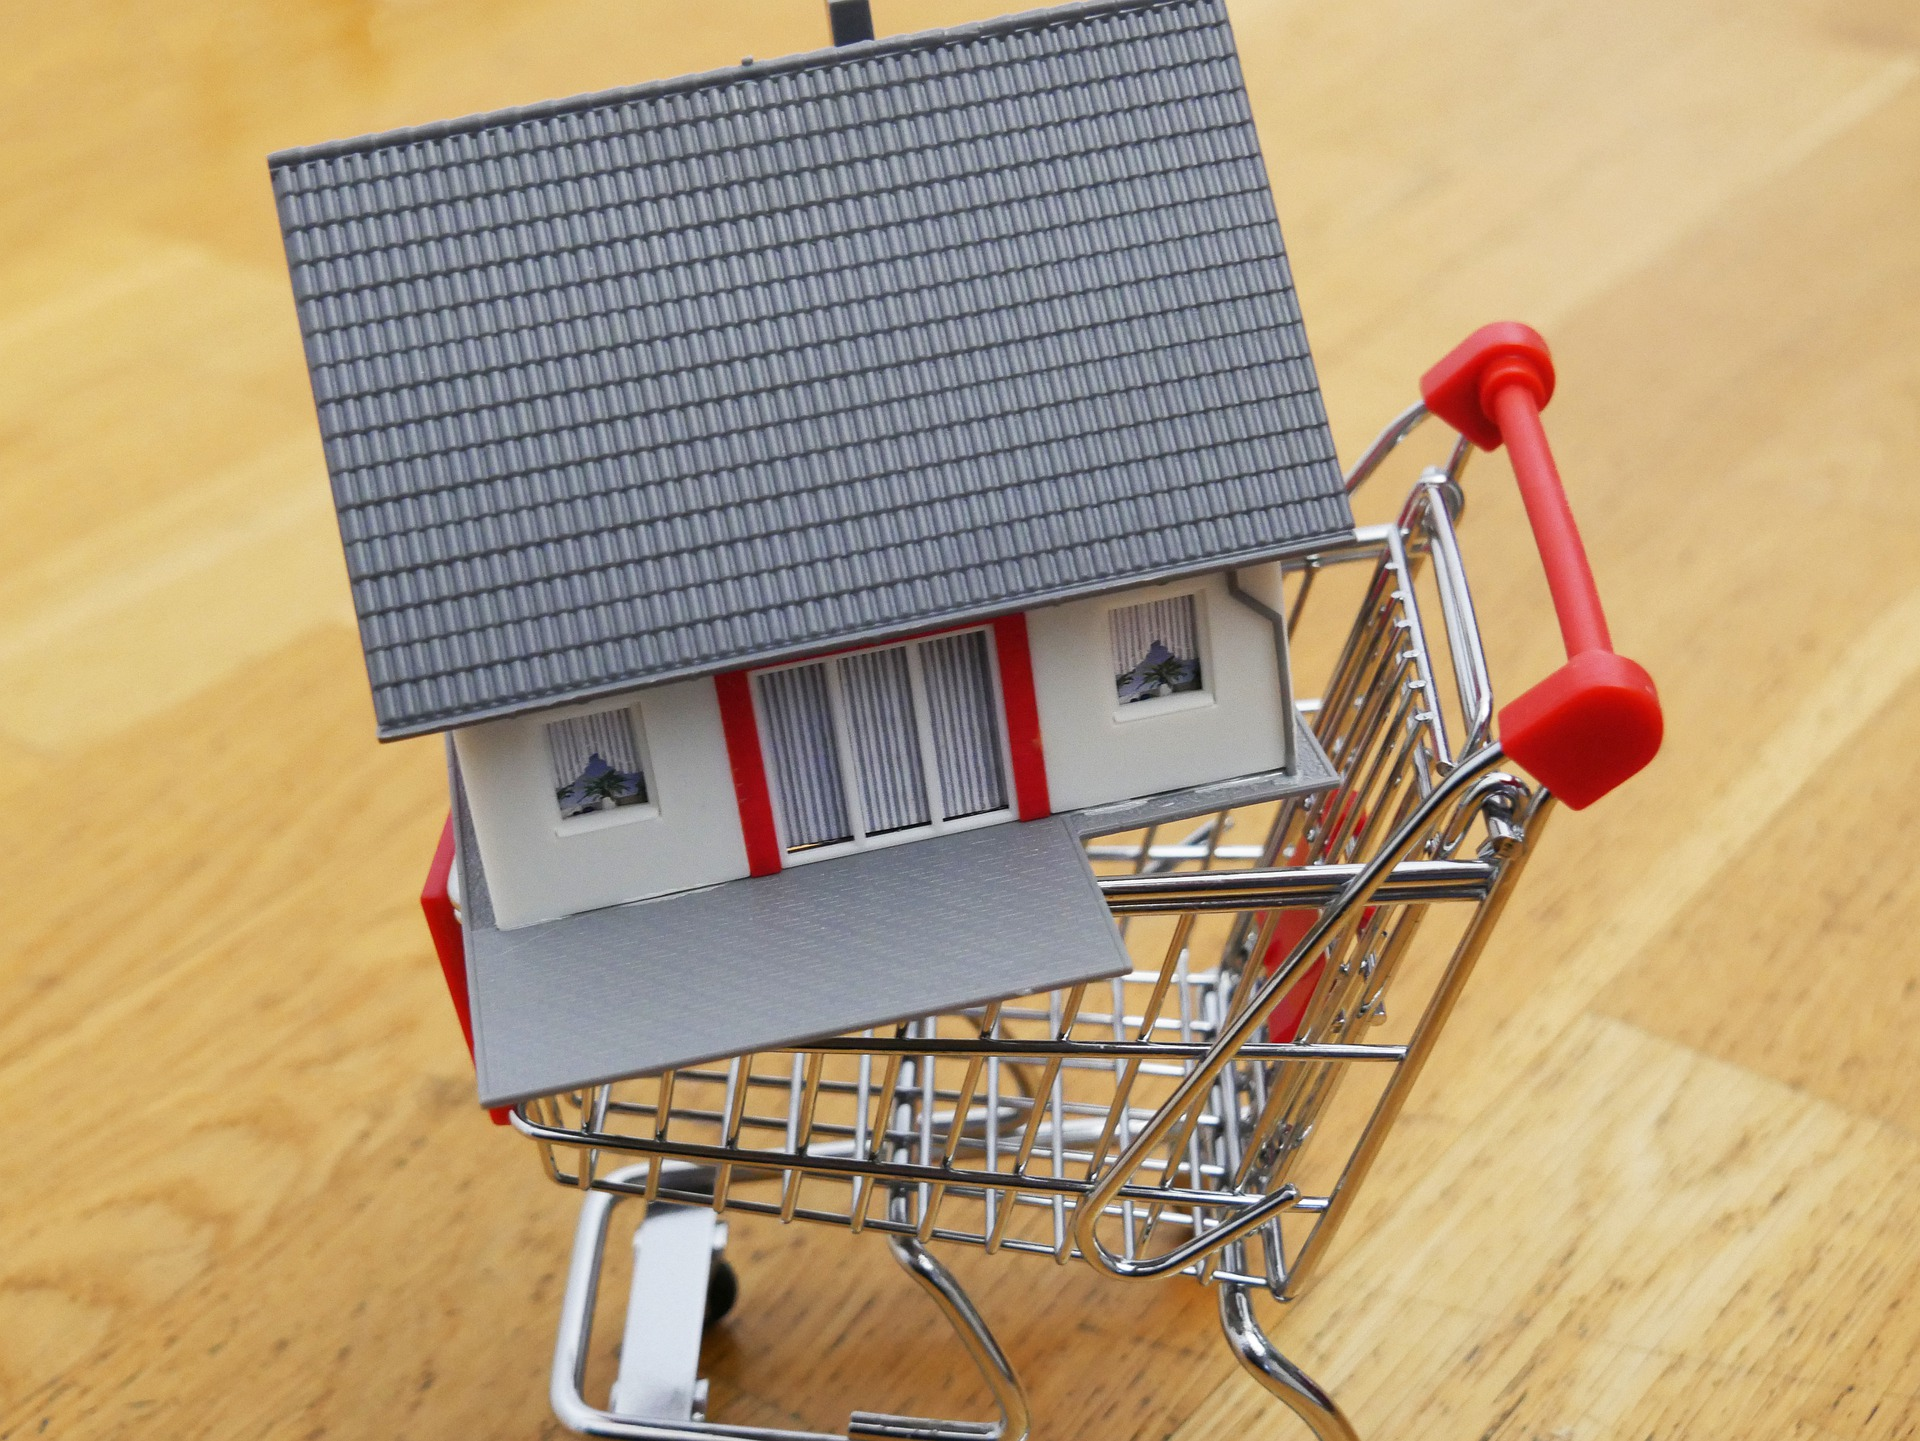 Buying your first property: What's the rush?